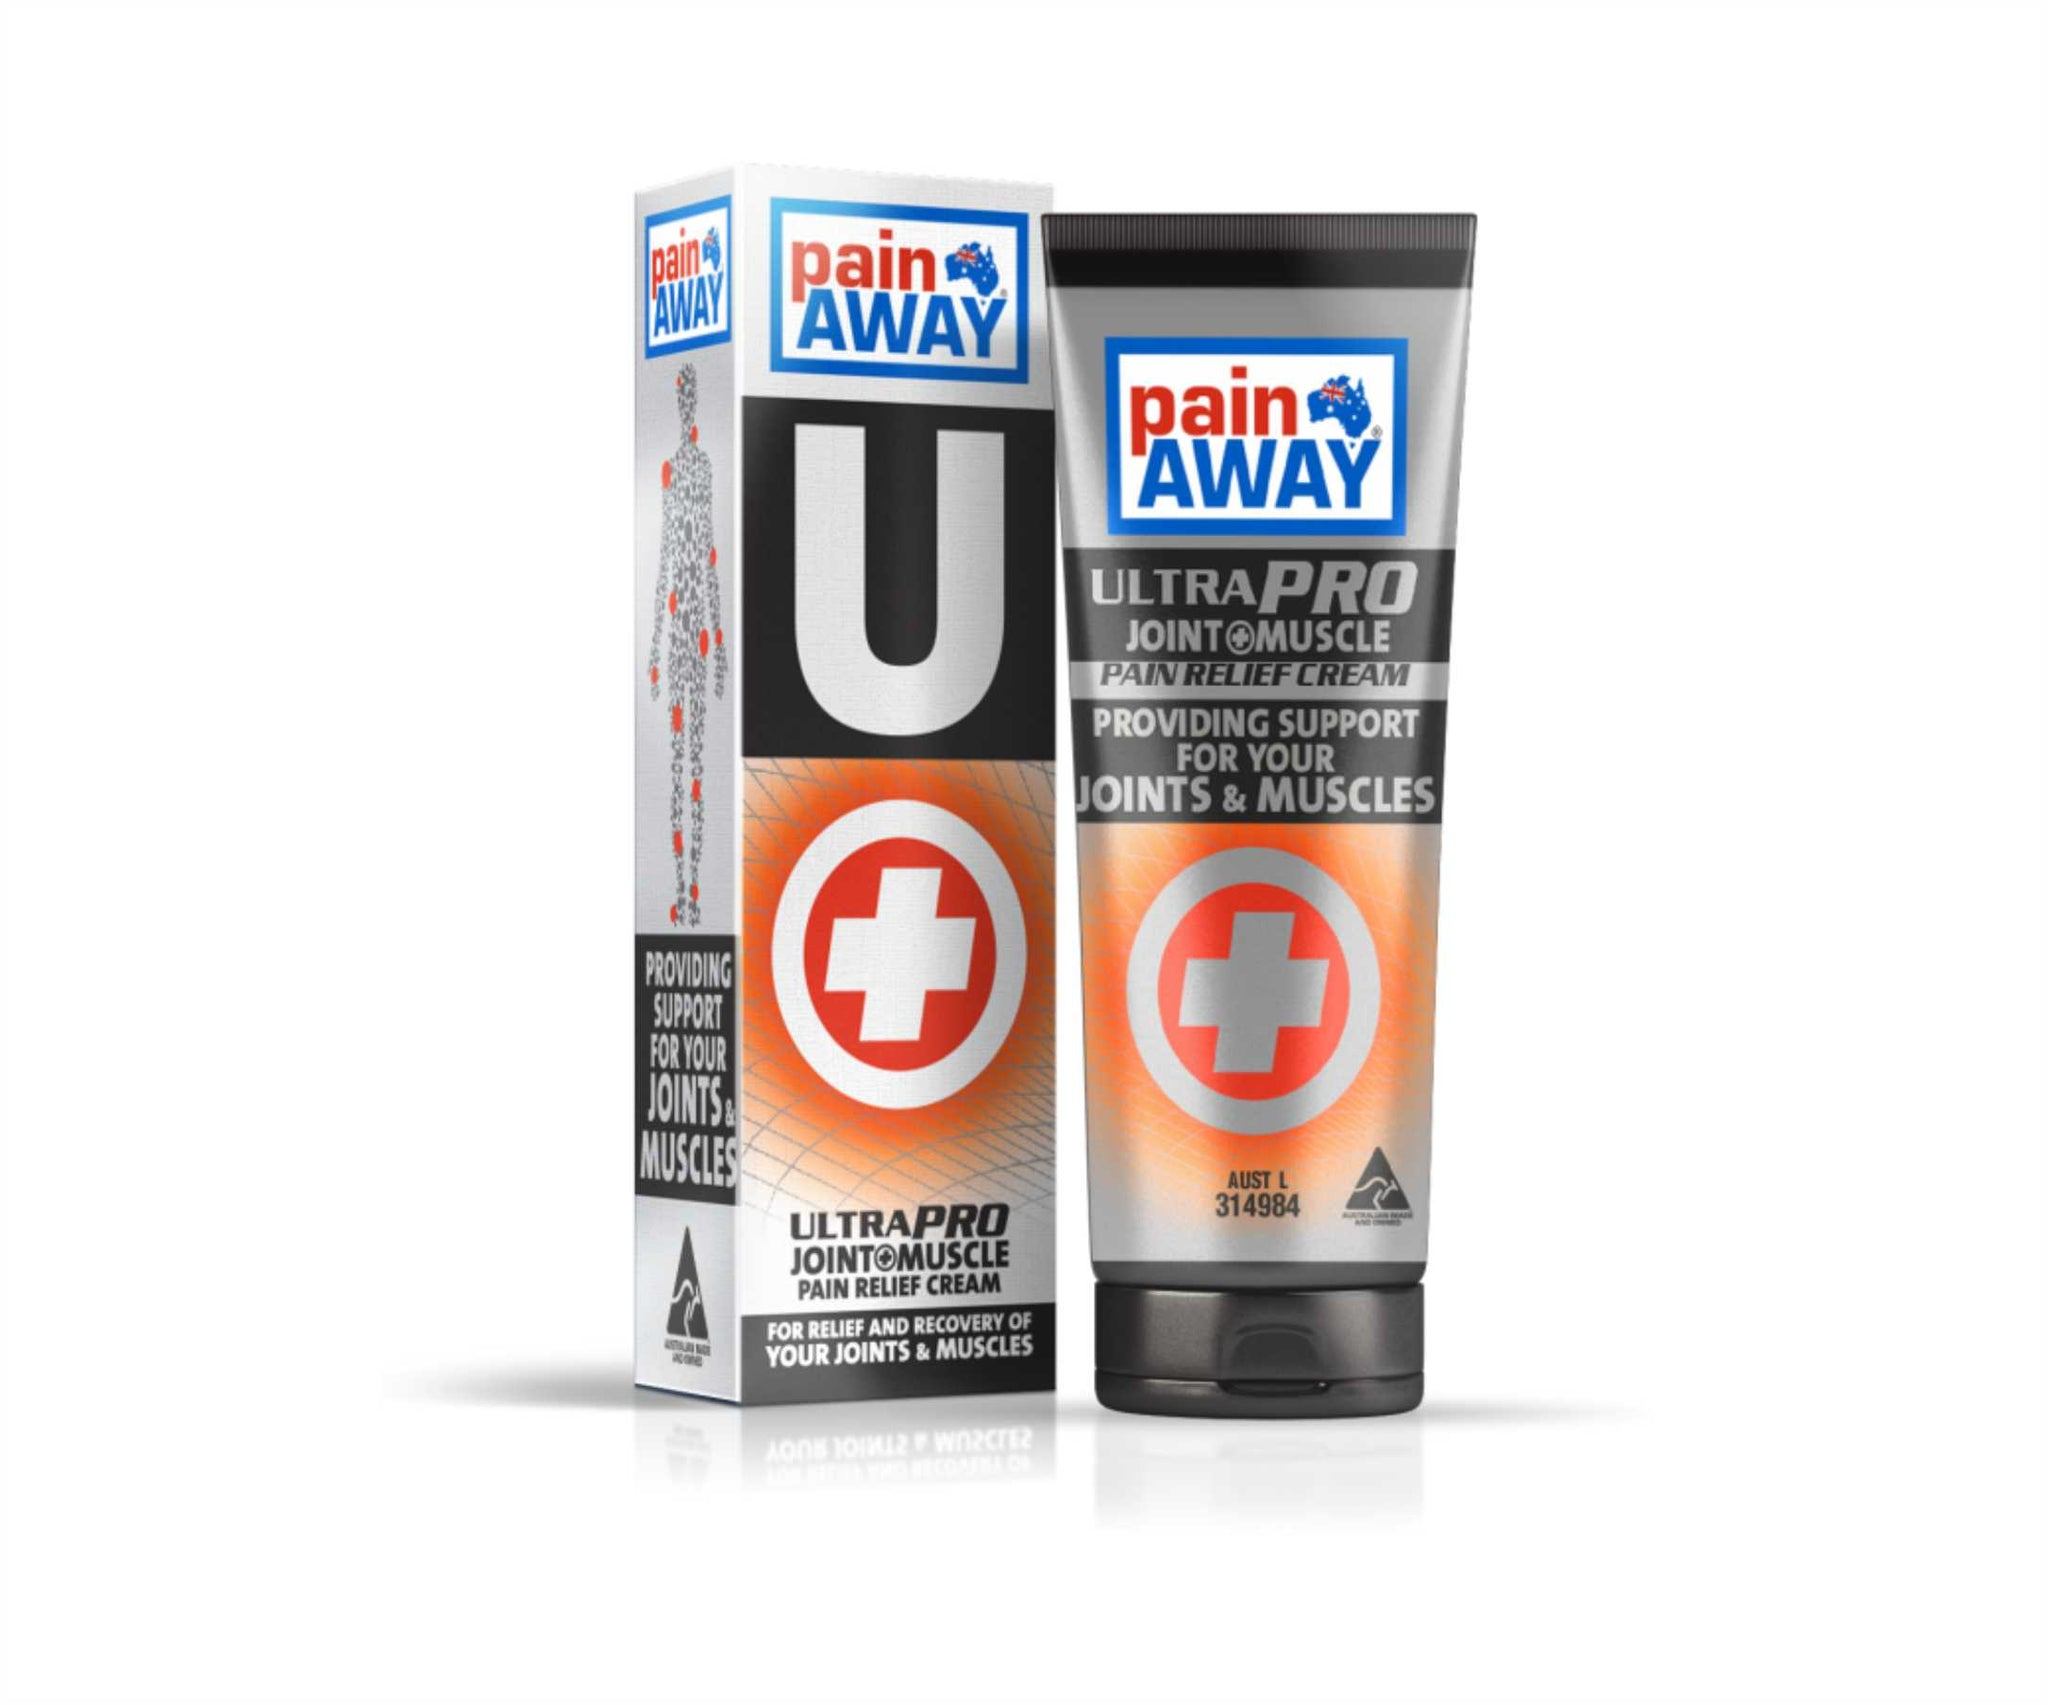 1 x PAIN AWAY ULTRA PRO - JOINT & MUSCLE <BR> PAIN RELIEF CREAM 125G TUBE